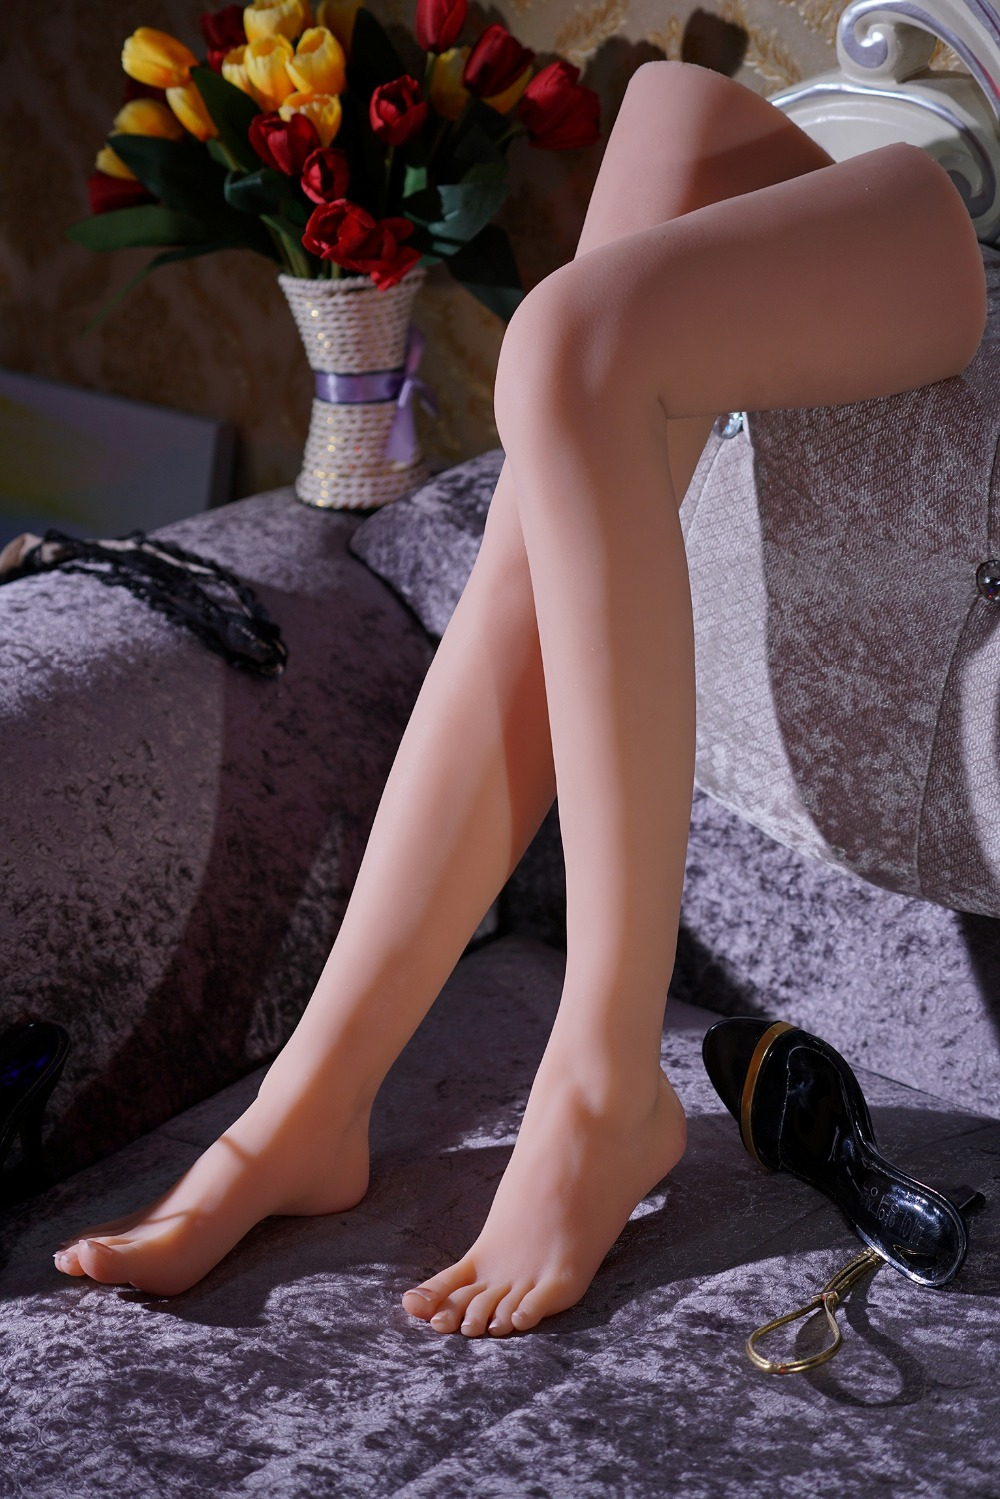 newest girls ballerina dancer gymnast foot feet pointed toes fetish toys model